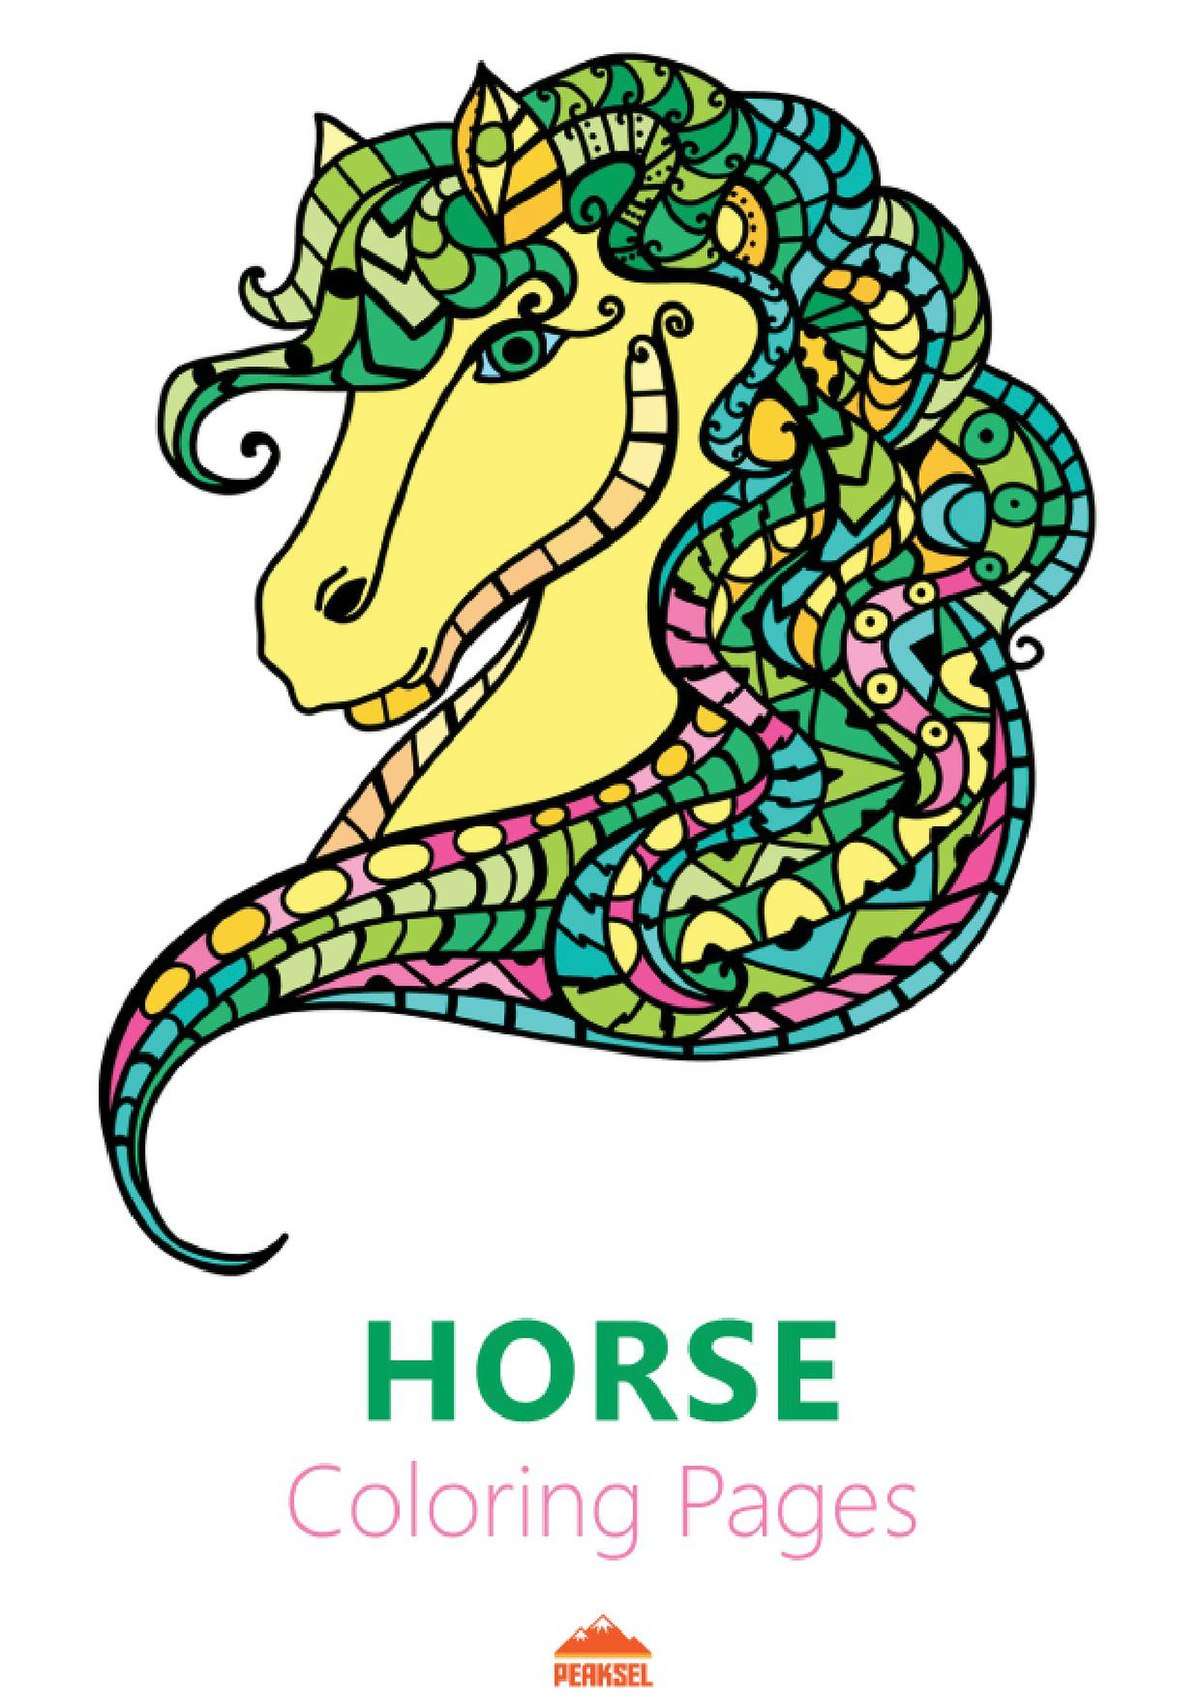 File:Horse Coloring Pages - Printable Coloring Book for ...